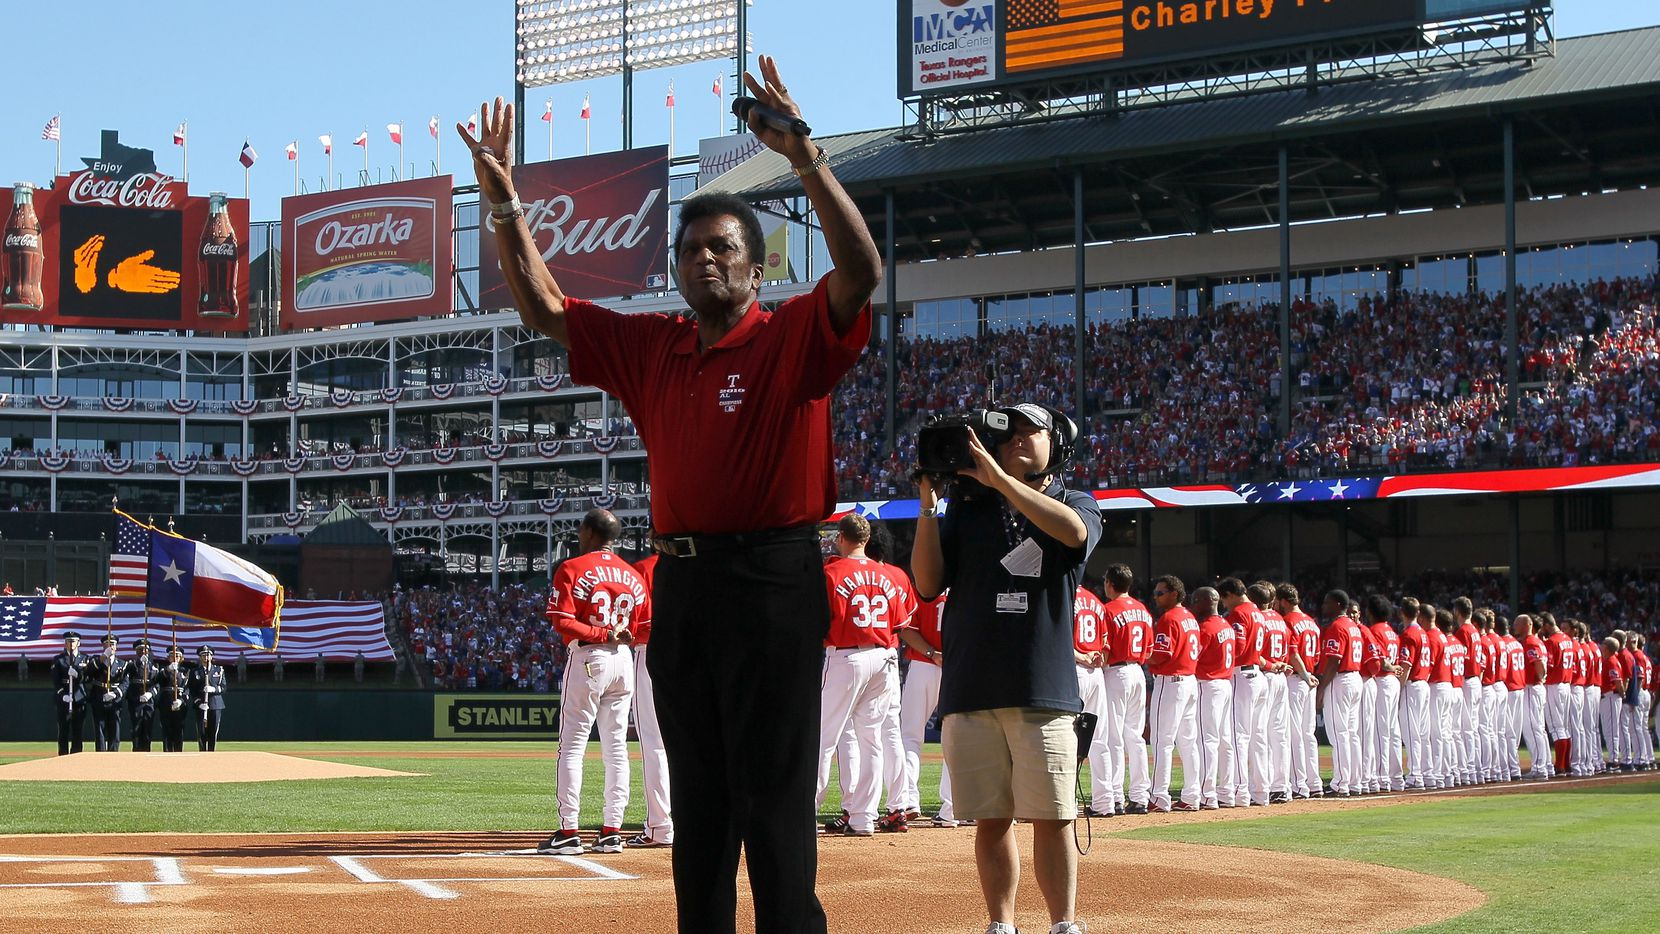 FILE — Country singer Charley Pride waves after singing the national anthem before game three of the ALDS the Tampa Bay Rays and the Texas Rangers at Rangers Ballpark in Arlington on October 9, 2010 in Arlington, Texas.